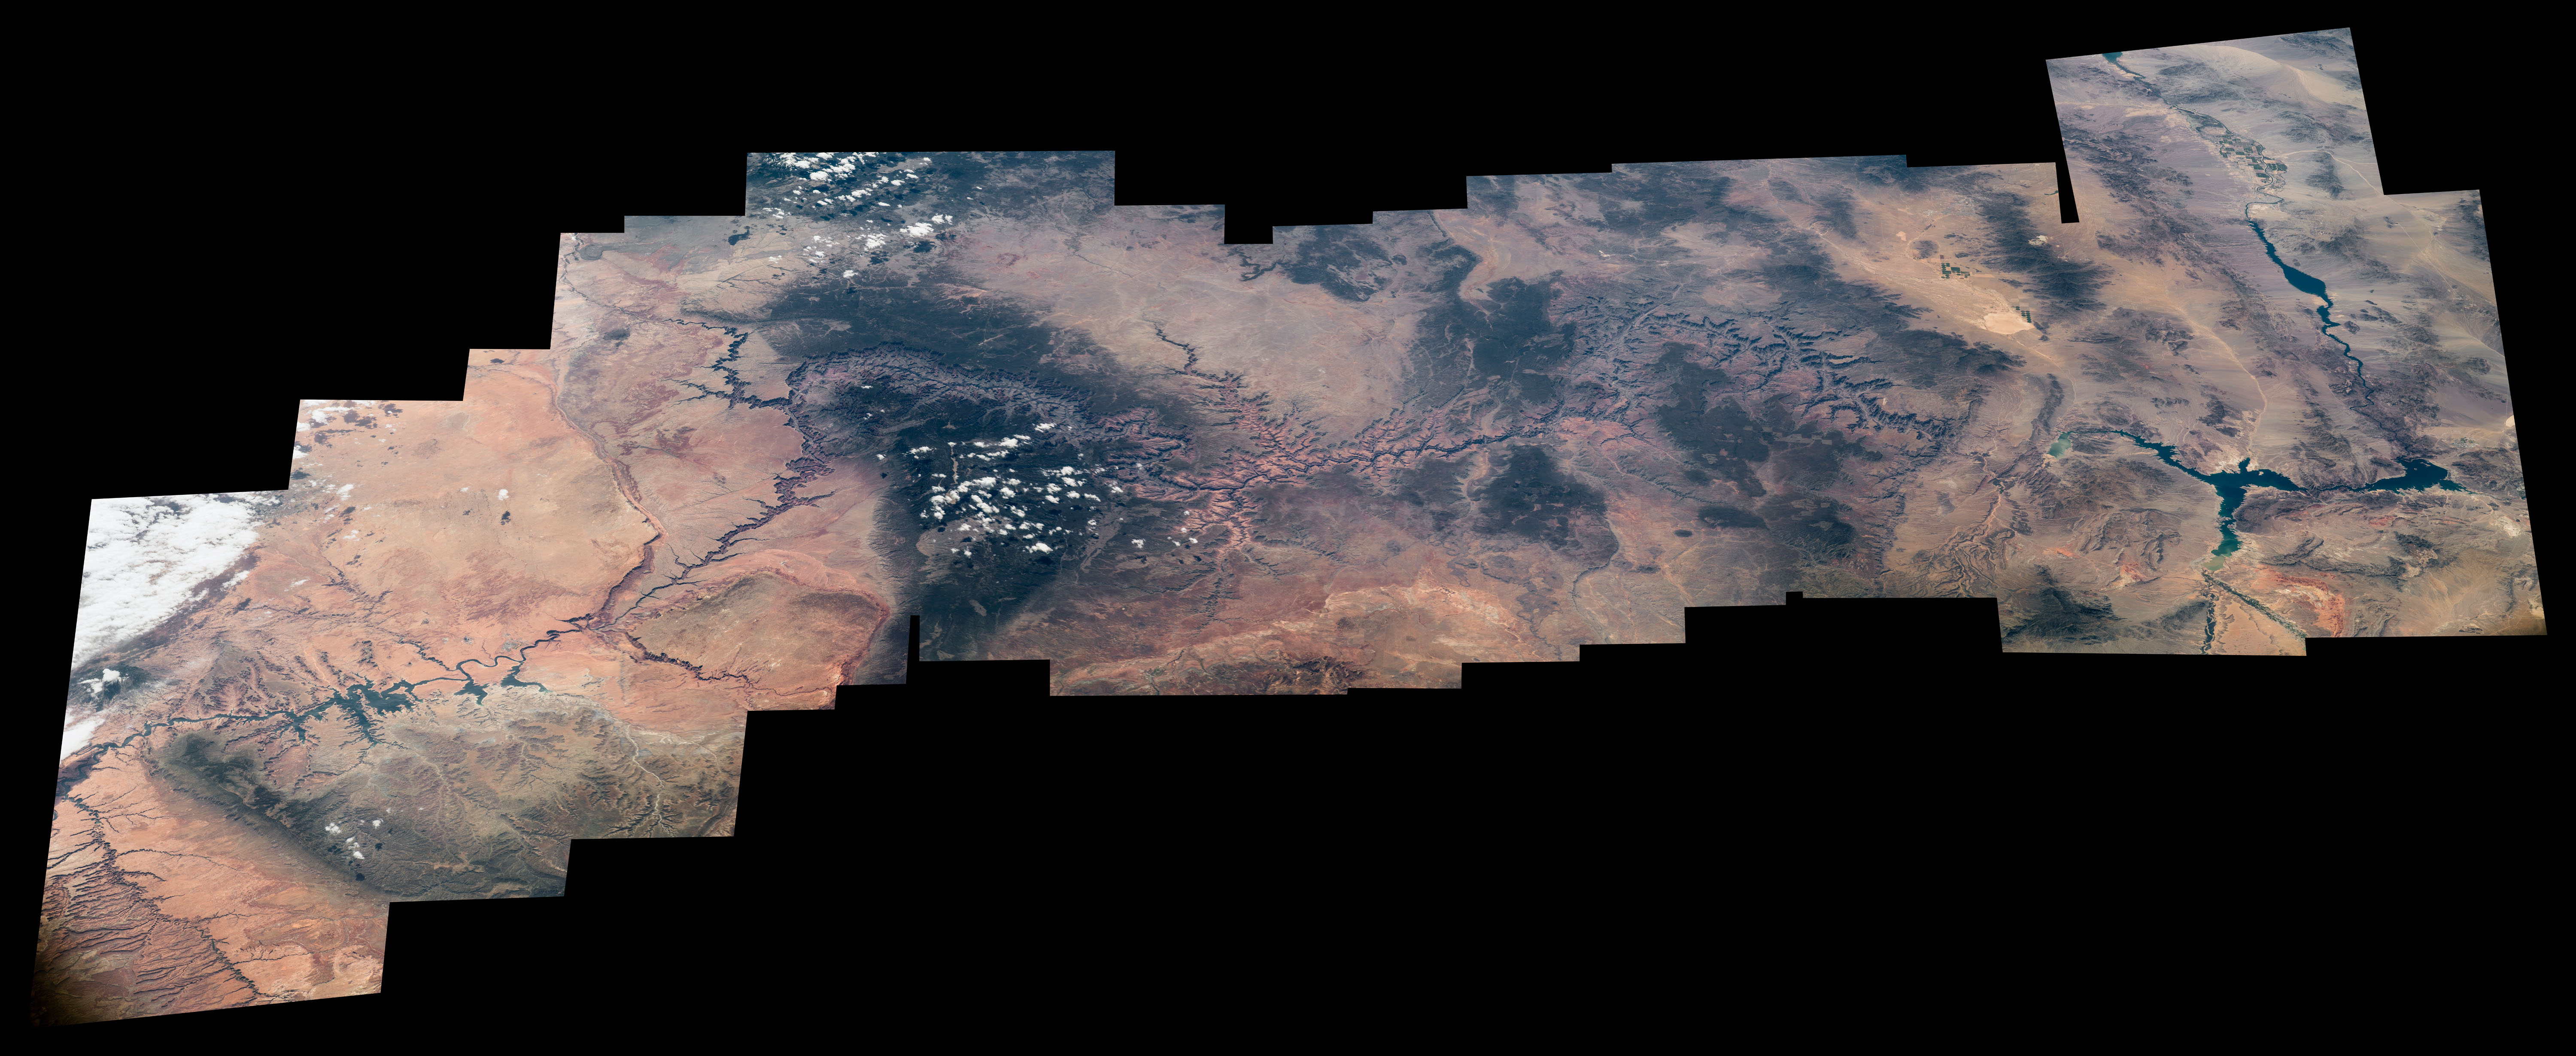 content space station view national parks